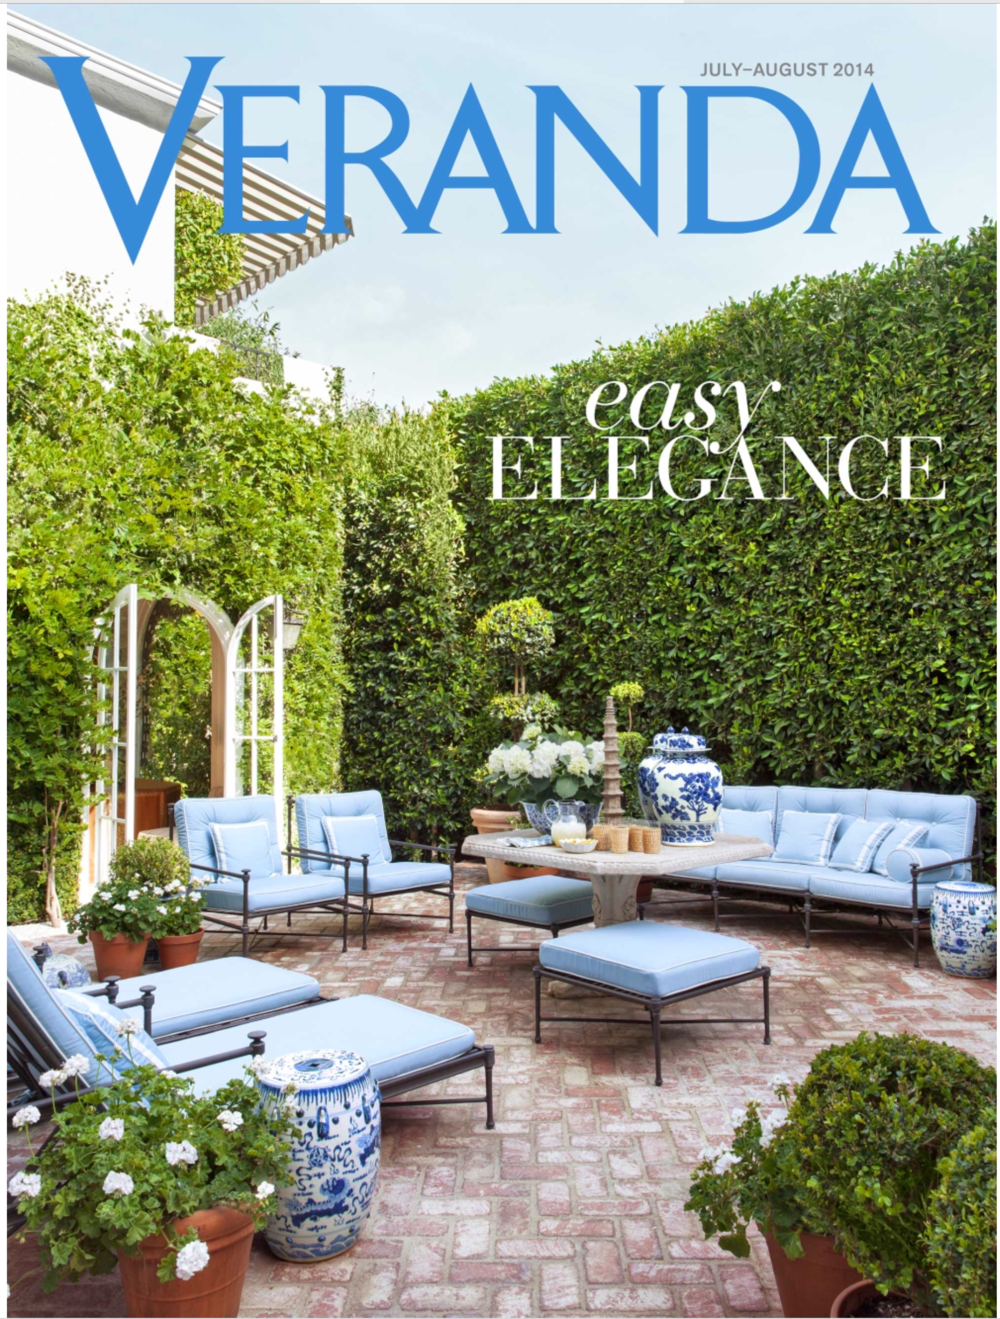 Marks patio graces the cover of Veranda magazine.  Photo - Roger Davies